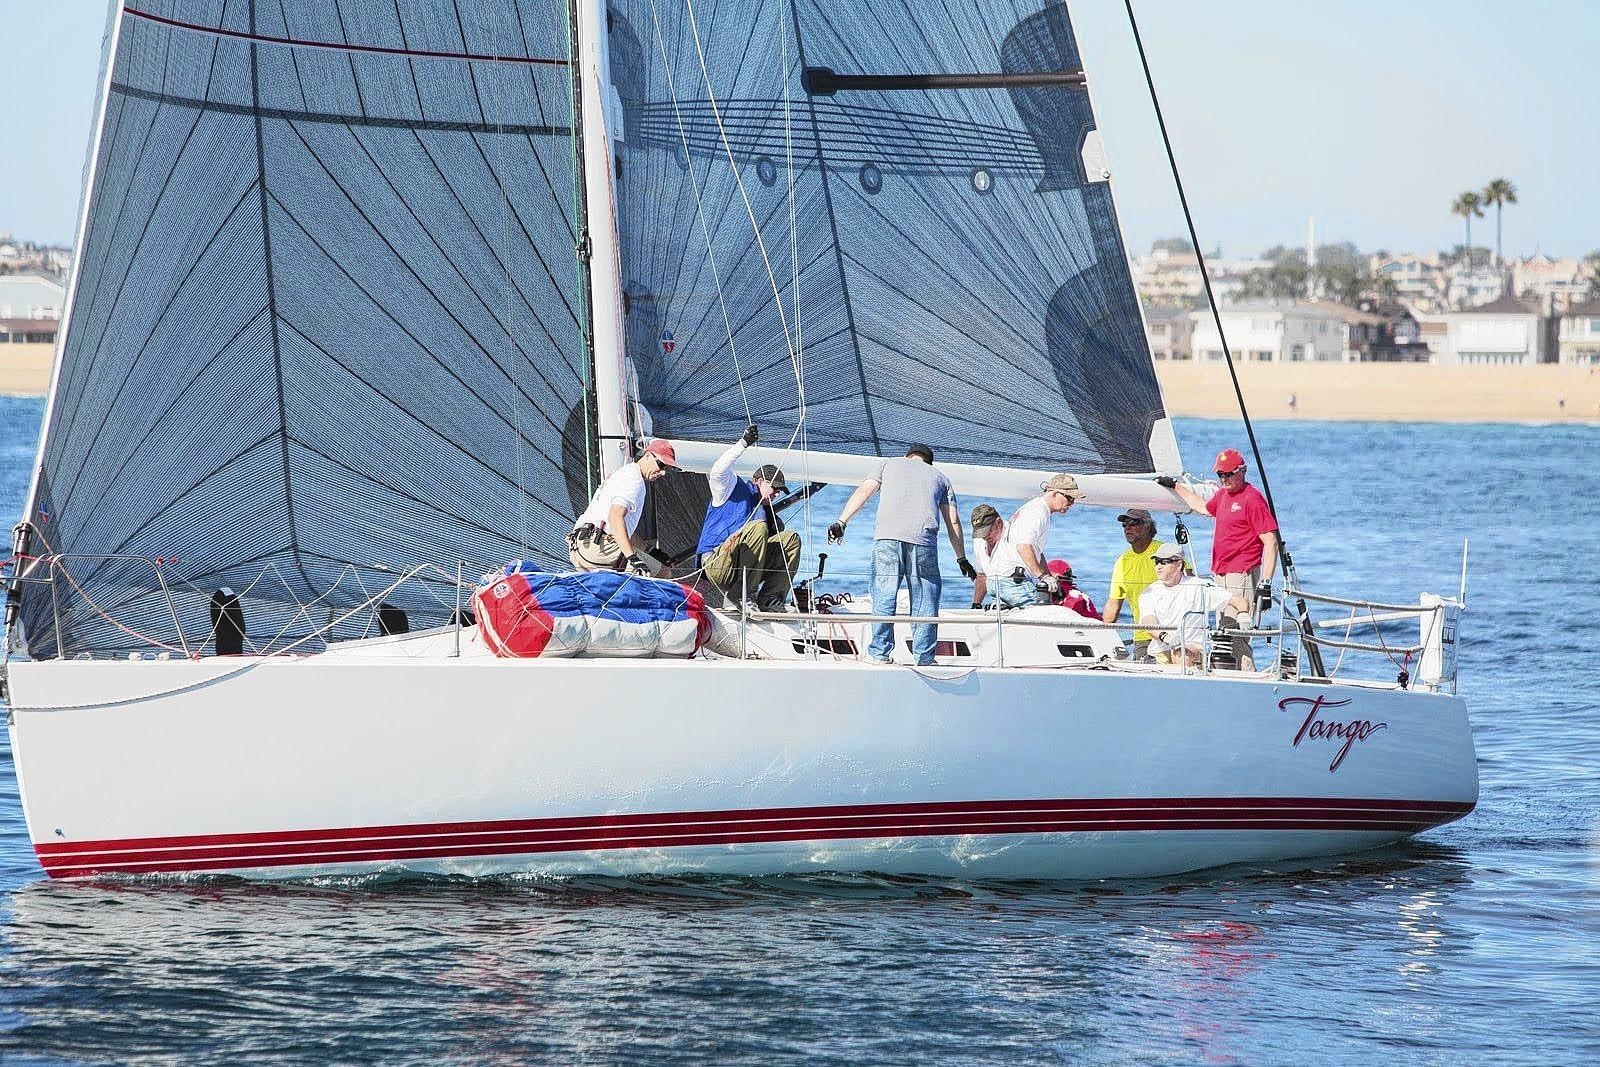 Tango takes the early lead in the Newport Beach High Point Series.